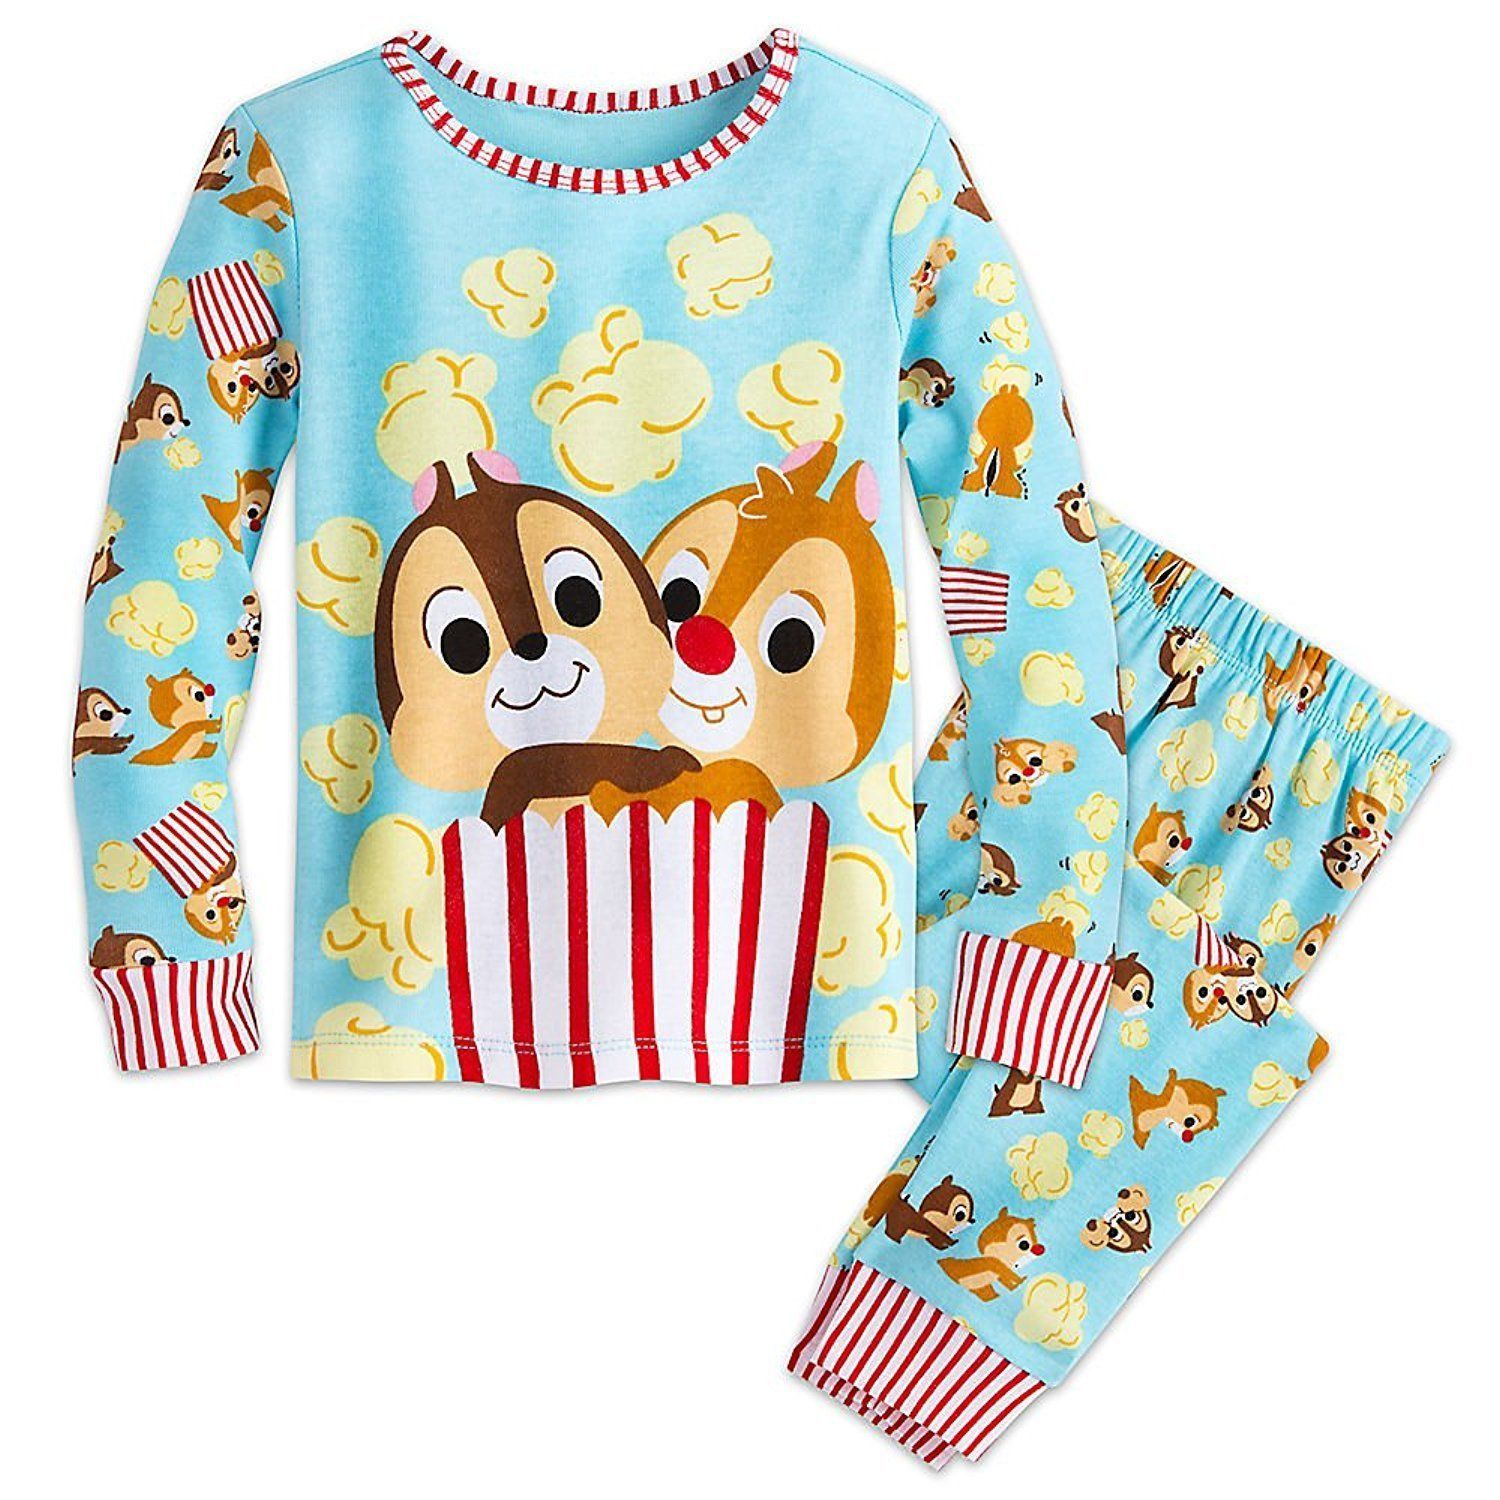 016b6a10b Genuine, Original, Authentic Disney Store - Screen art - Striped ribbed  collar and cuffs - Coordinating elastic-waist pajama pants - 100% cotton -  Made in ...